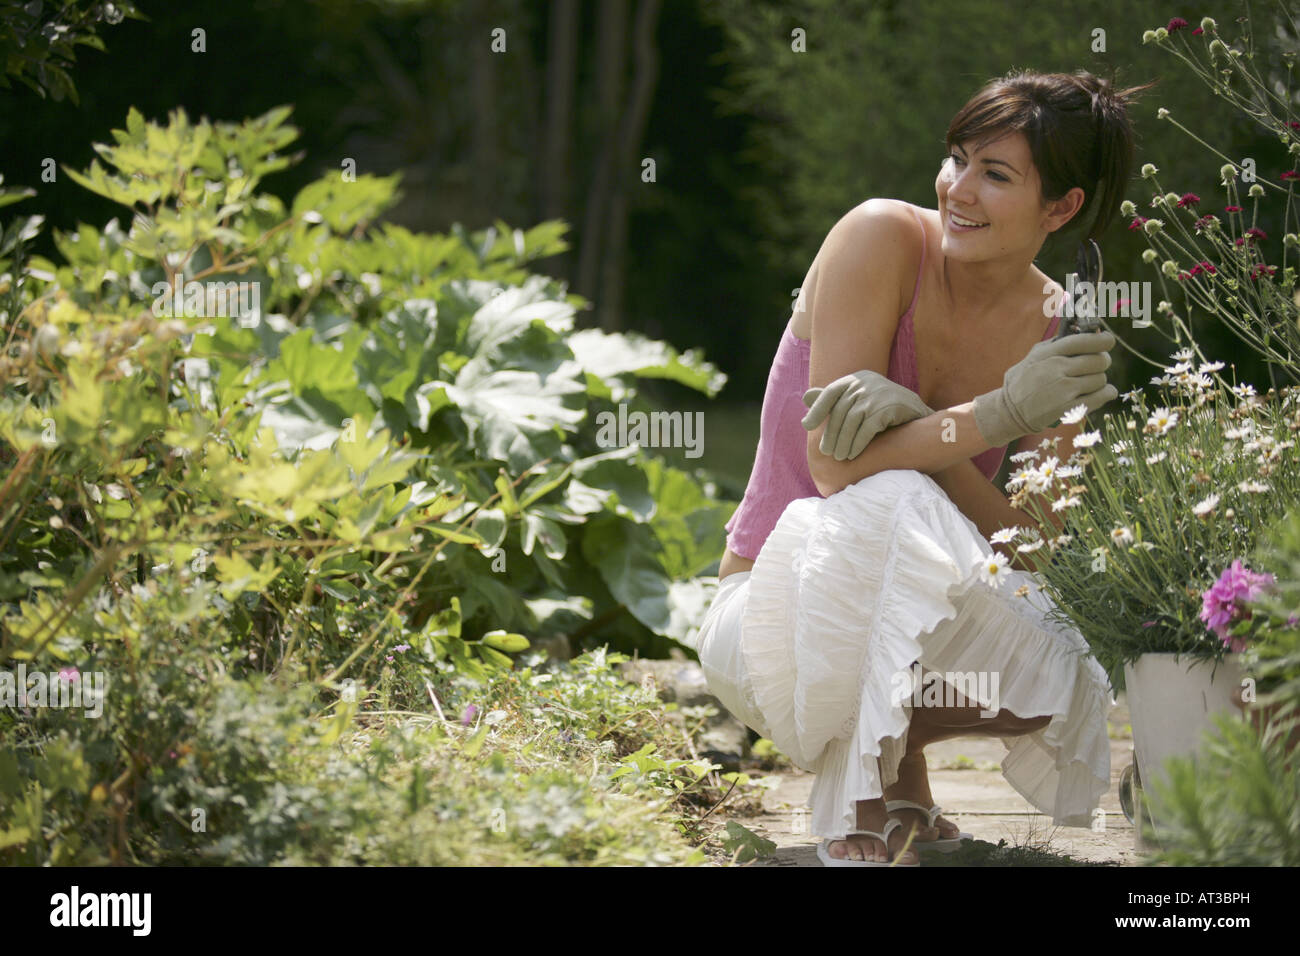 A young woman in her garden pruning flowers - Stock Image